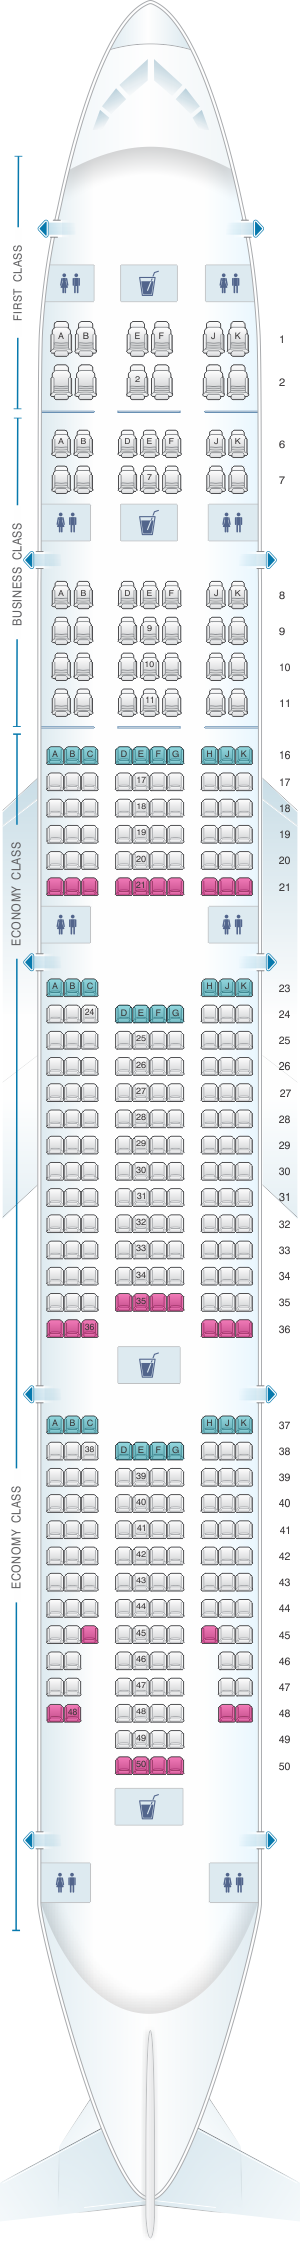 Seat map for Emirates Boeing B777 300ER three class